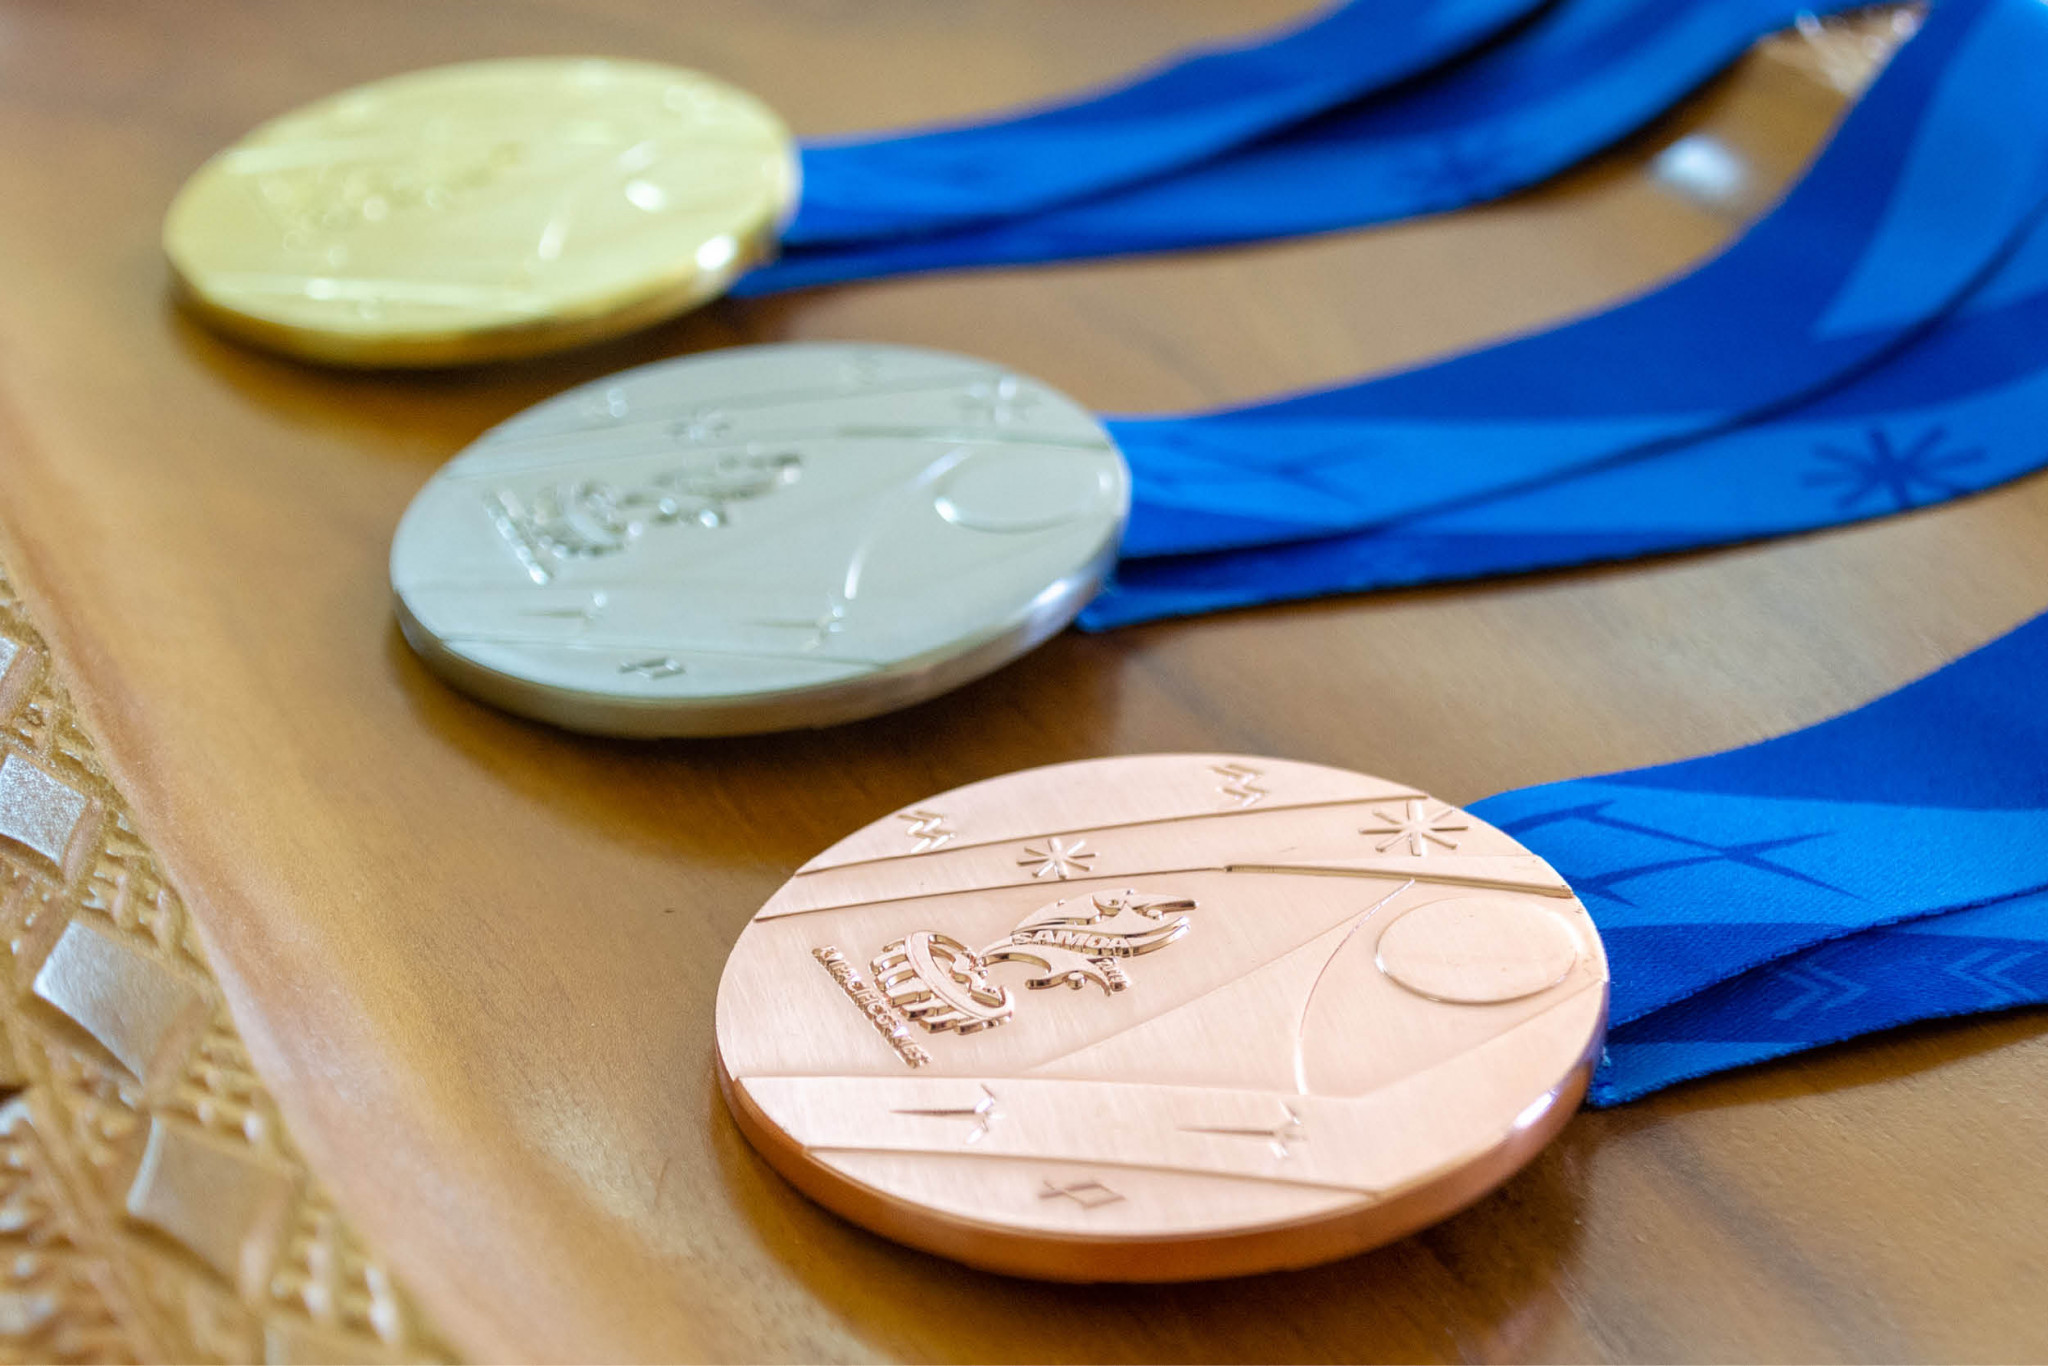 Medal designs revealed for Samoa 2019